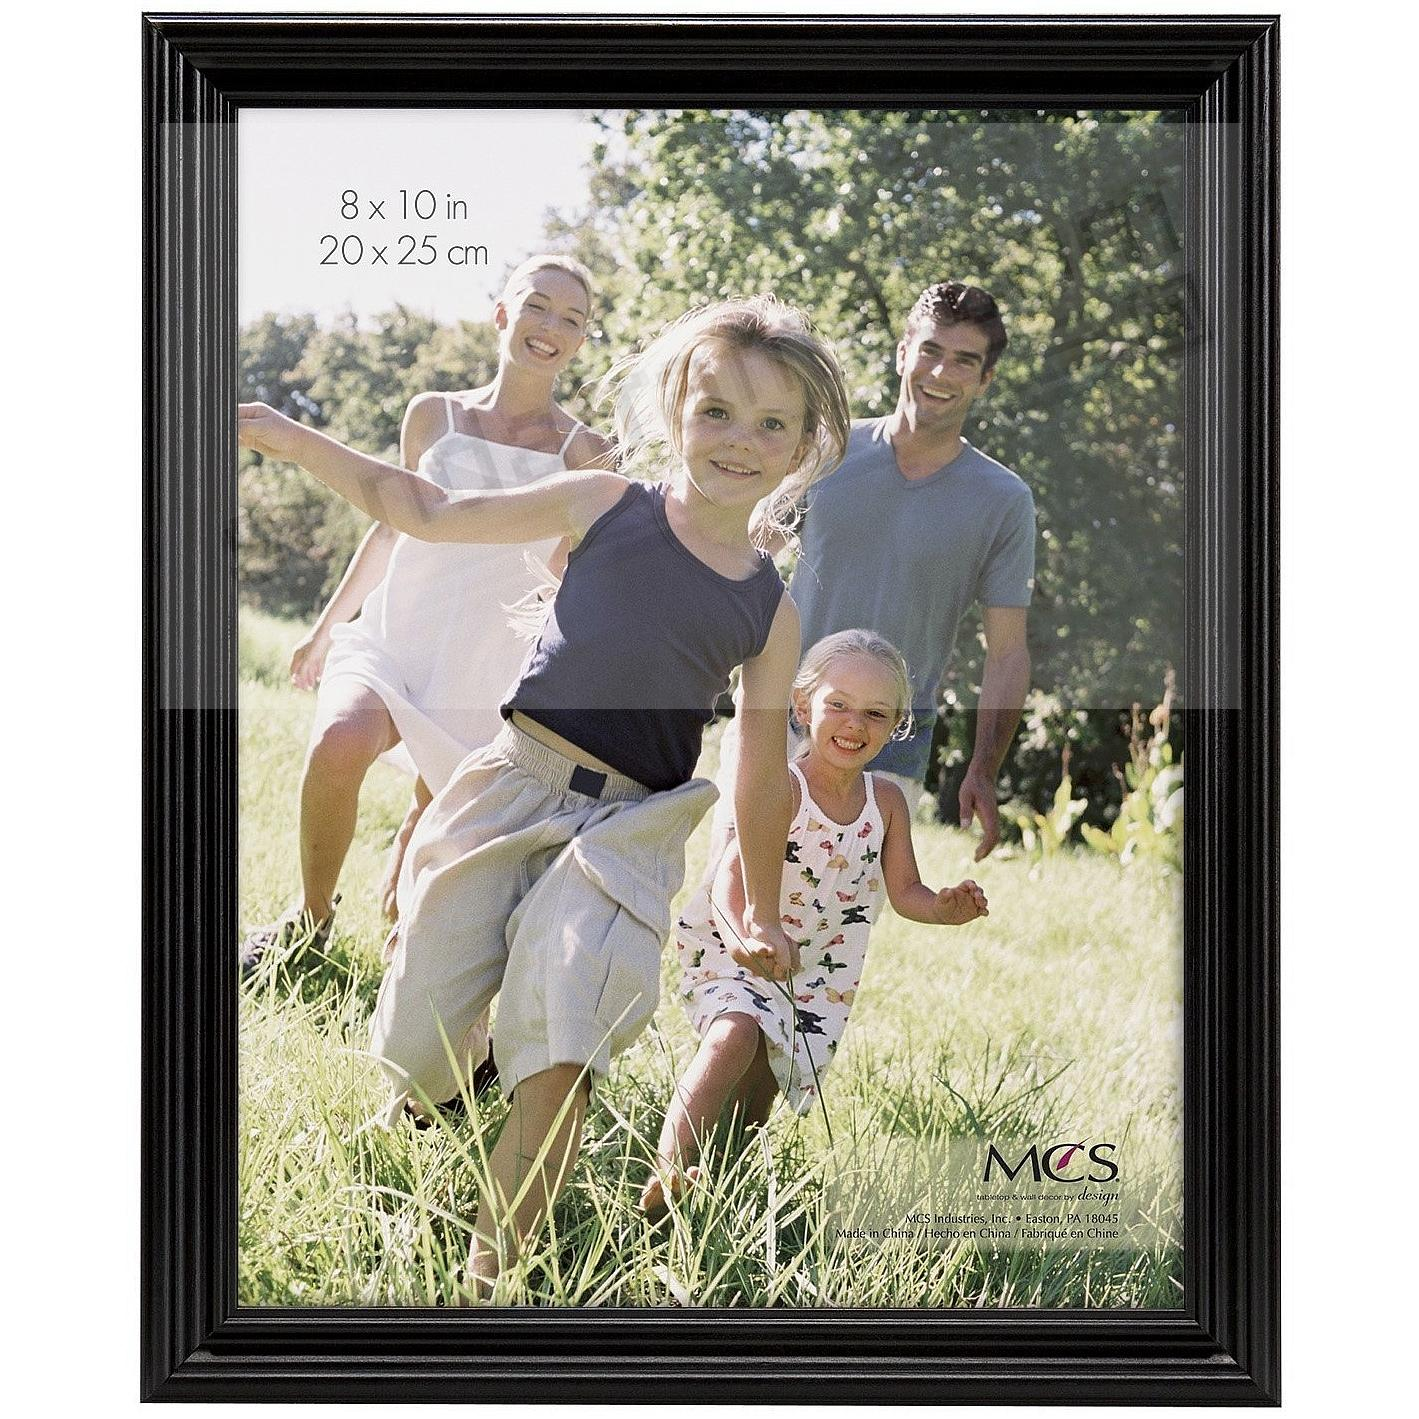 TRADITIONAL RIDGED Solid Wood Black 8x10 frame from MCS®